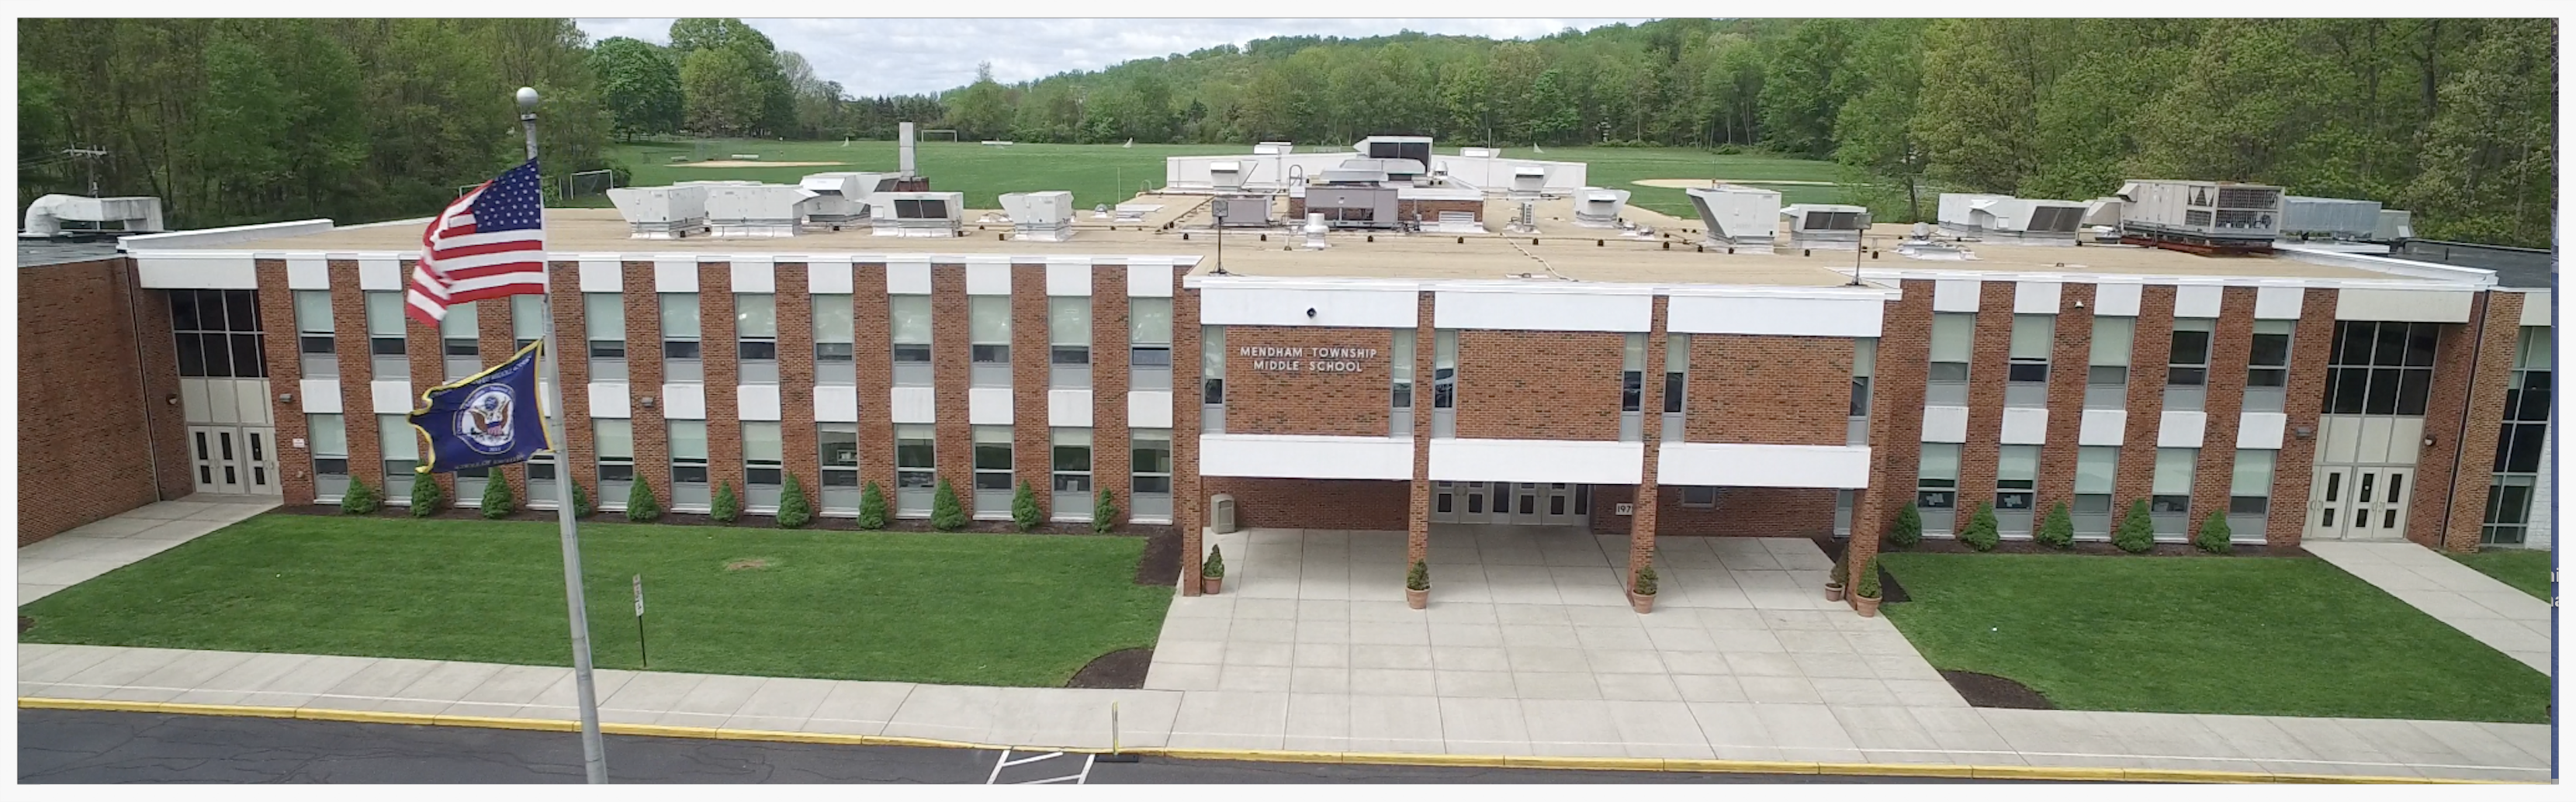 Photograph of Mendham Township Middle School